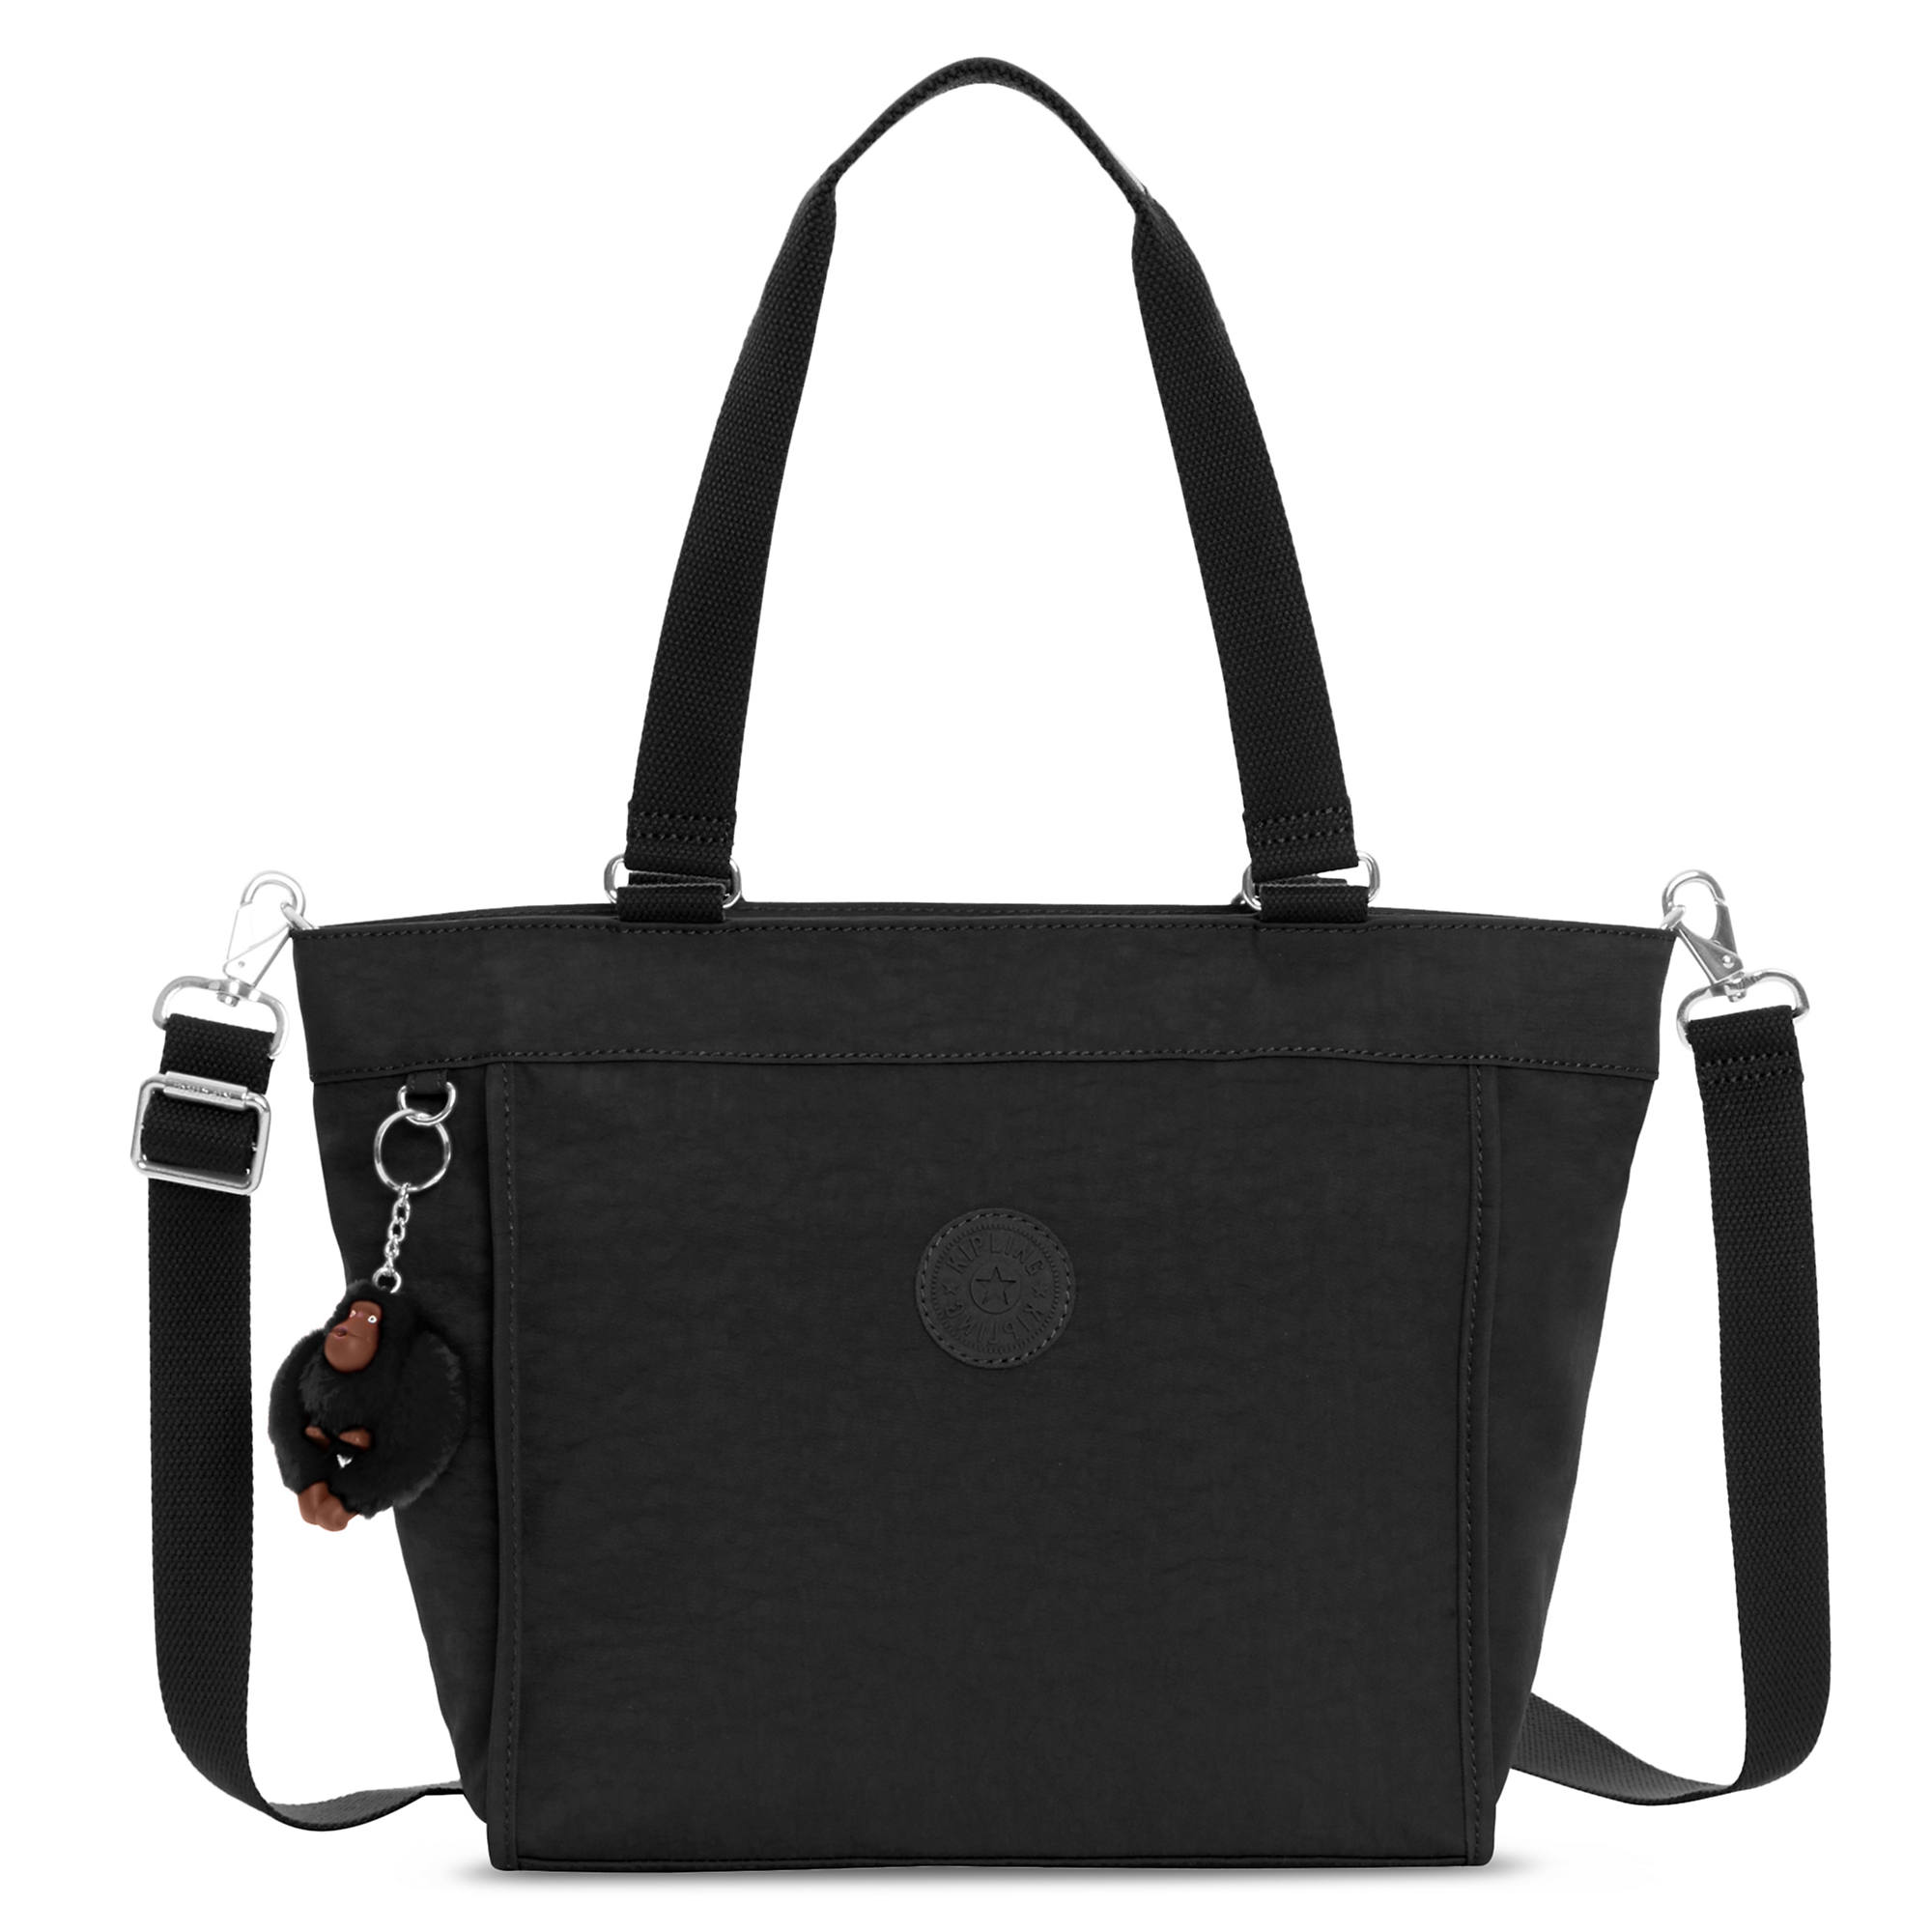 New Per Small Tote Bag Black Large